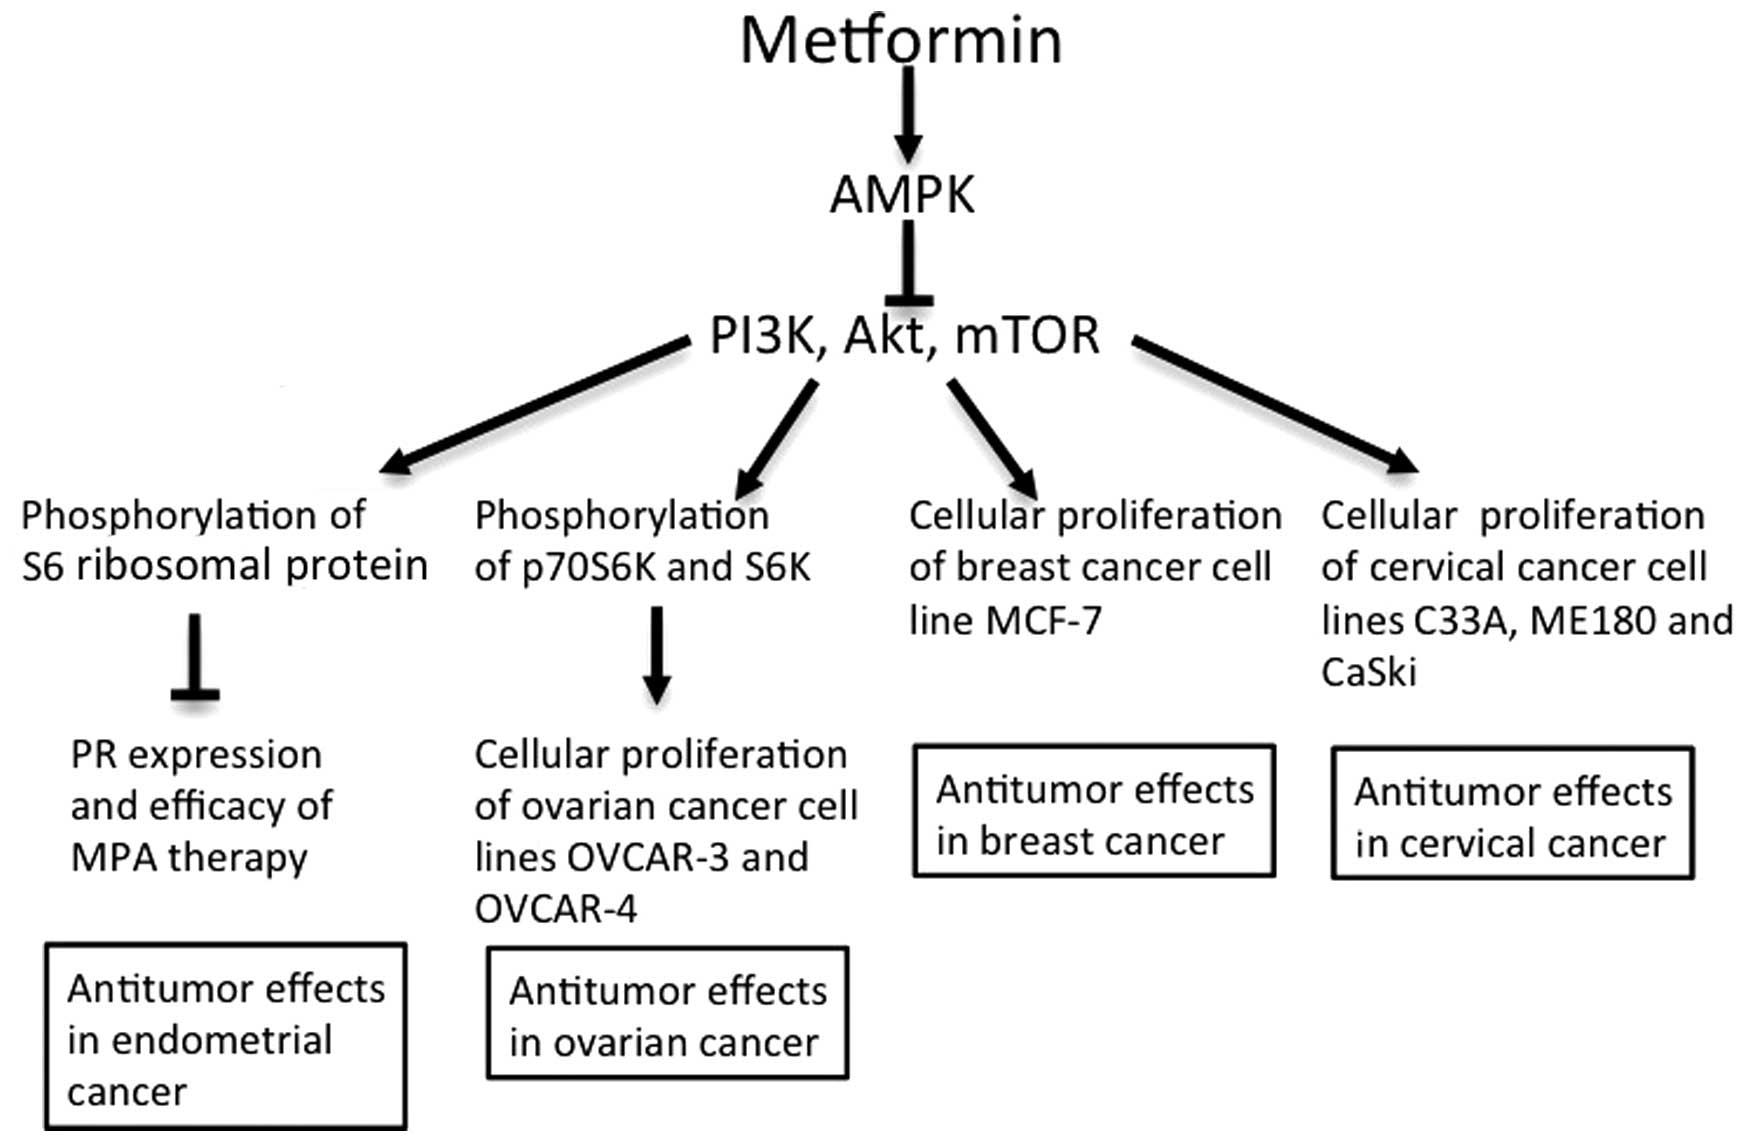 Polycystic ovarian syndrome treatment with metformin,